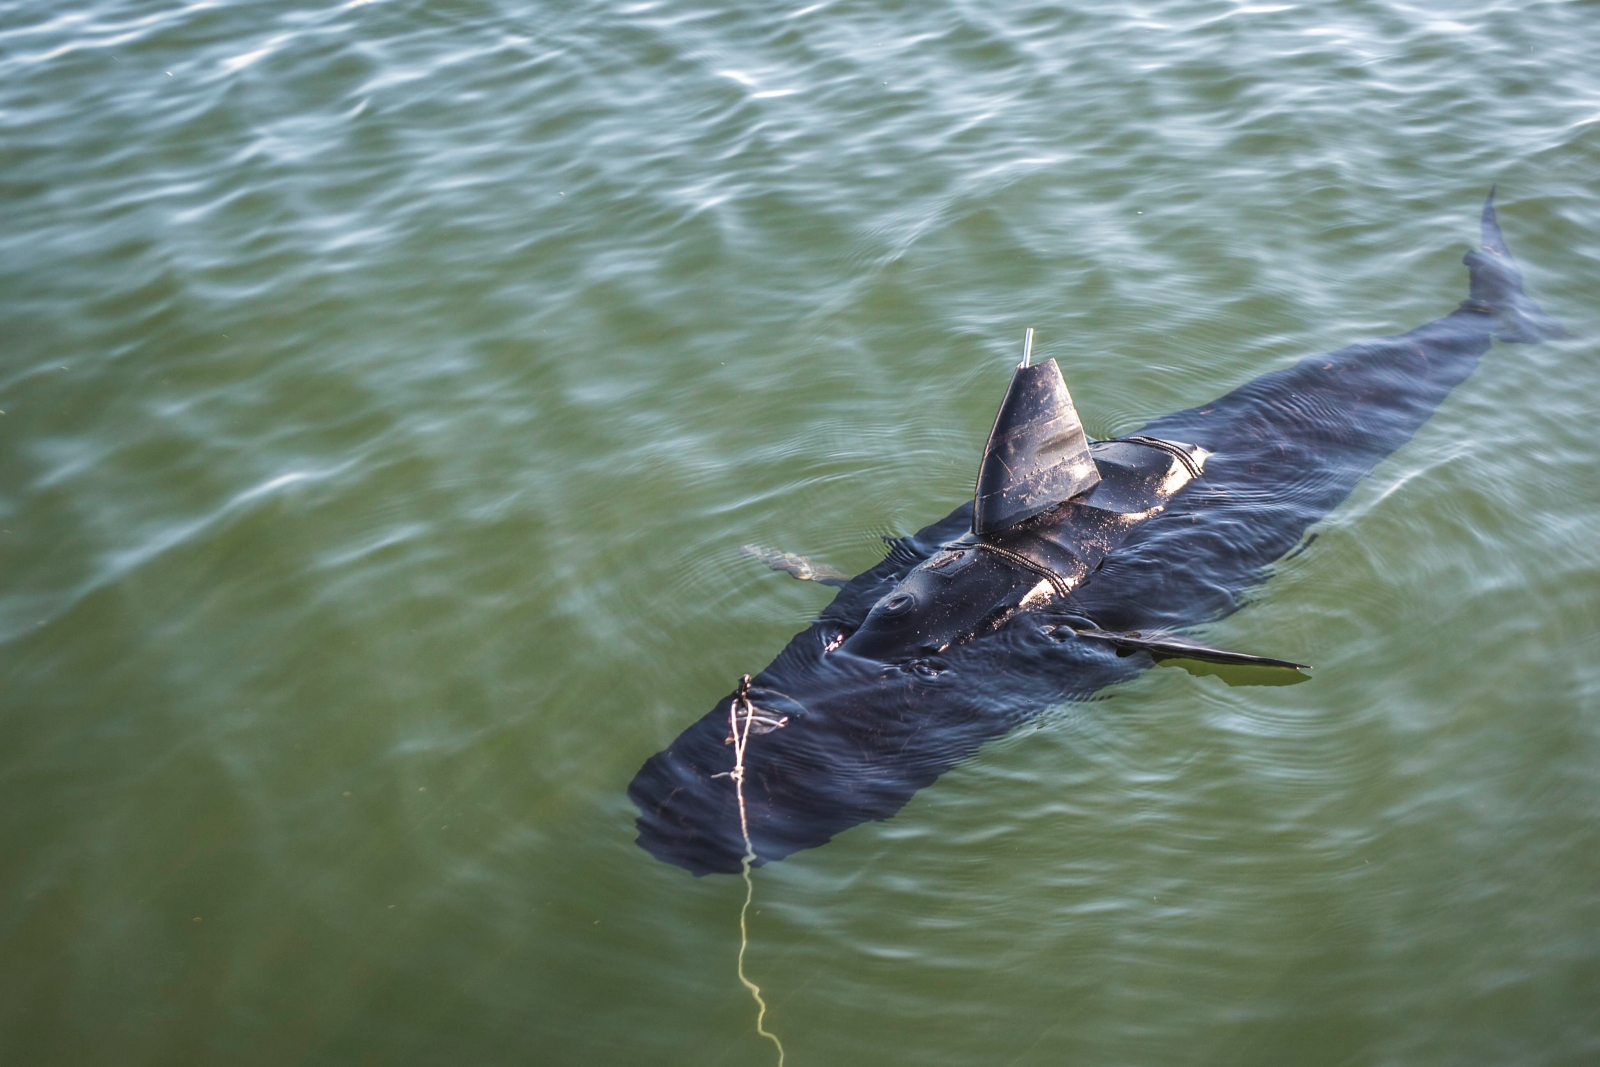 Navy unveils 'Ghost Swimmer' robot fish